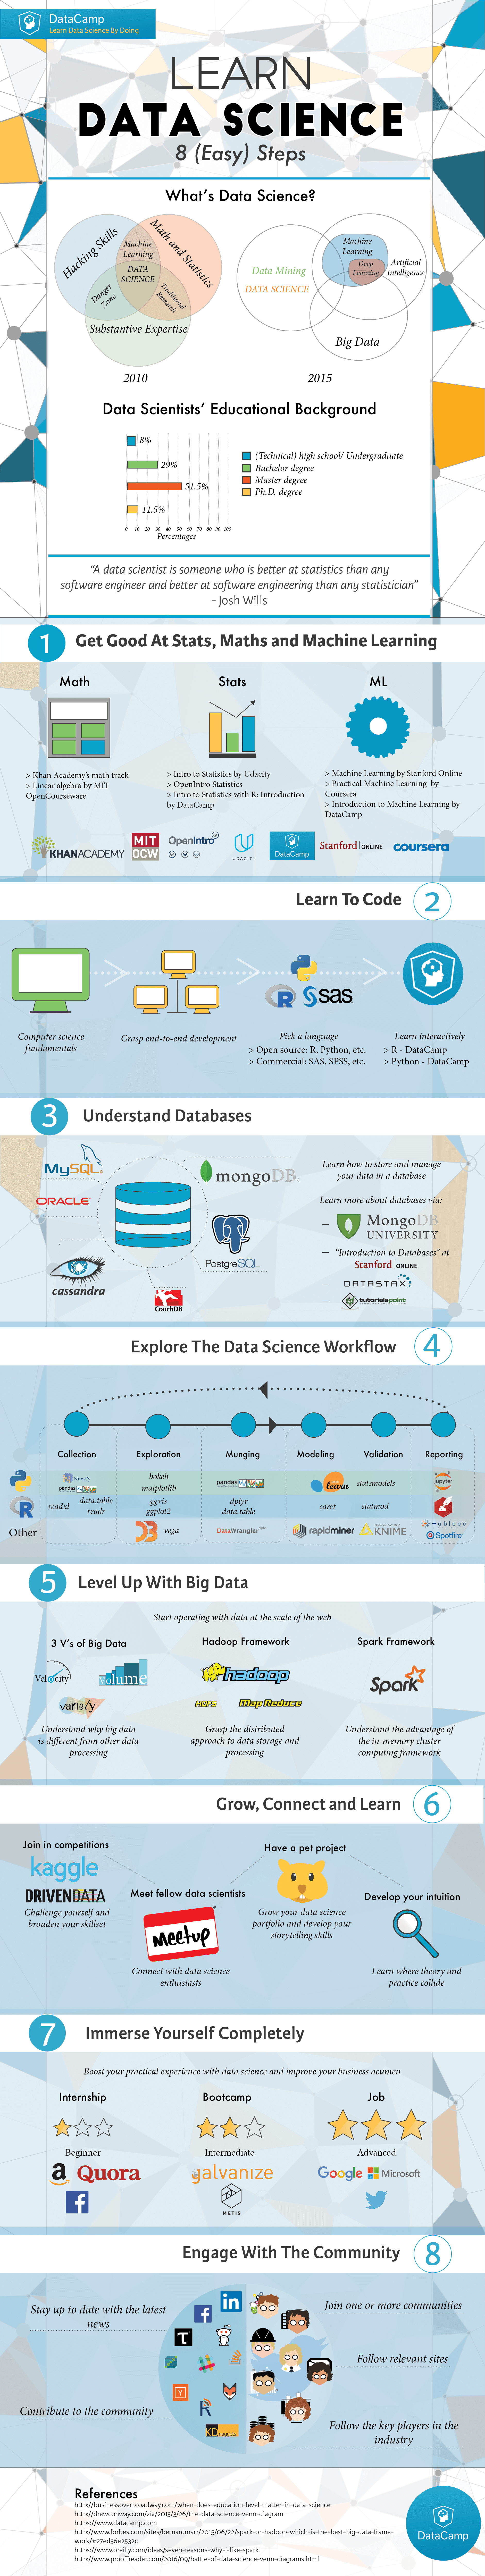 Data Science in eight steps